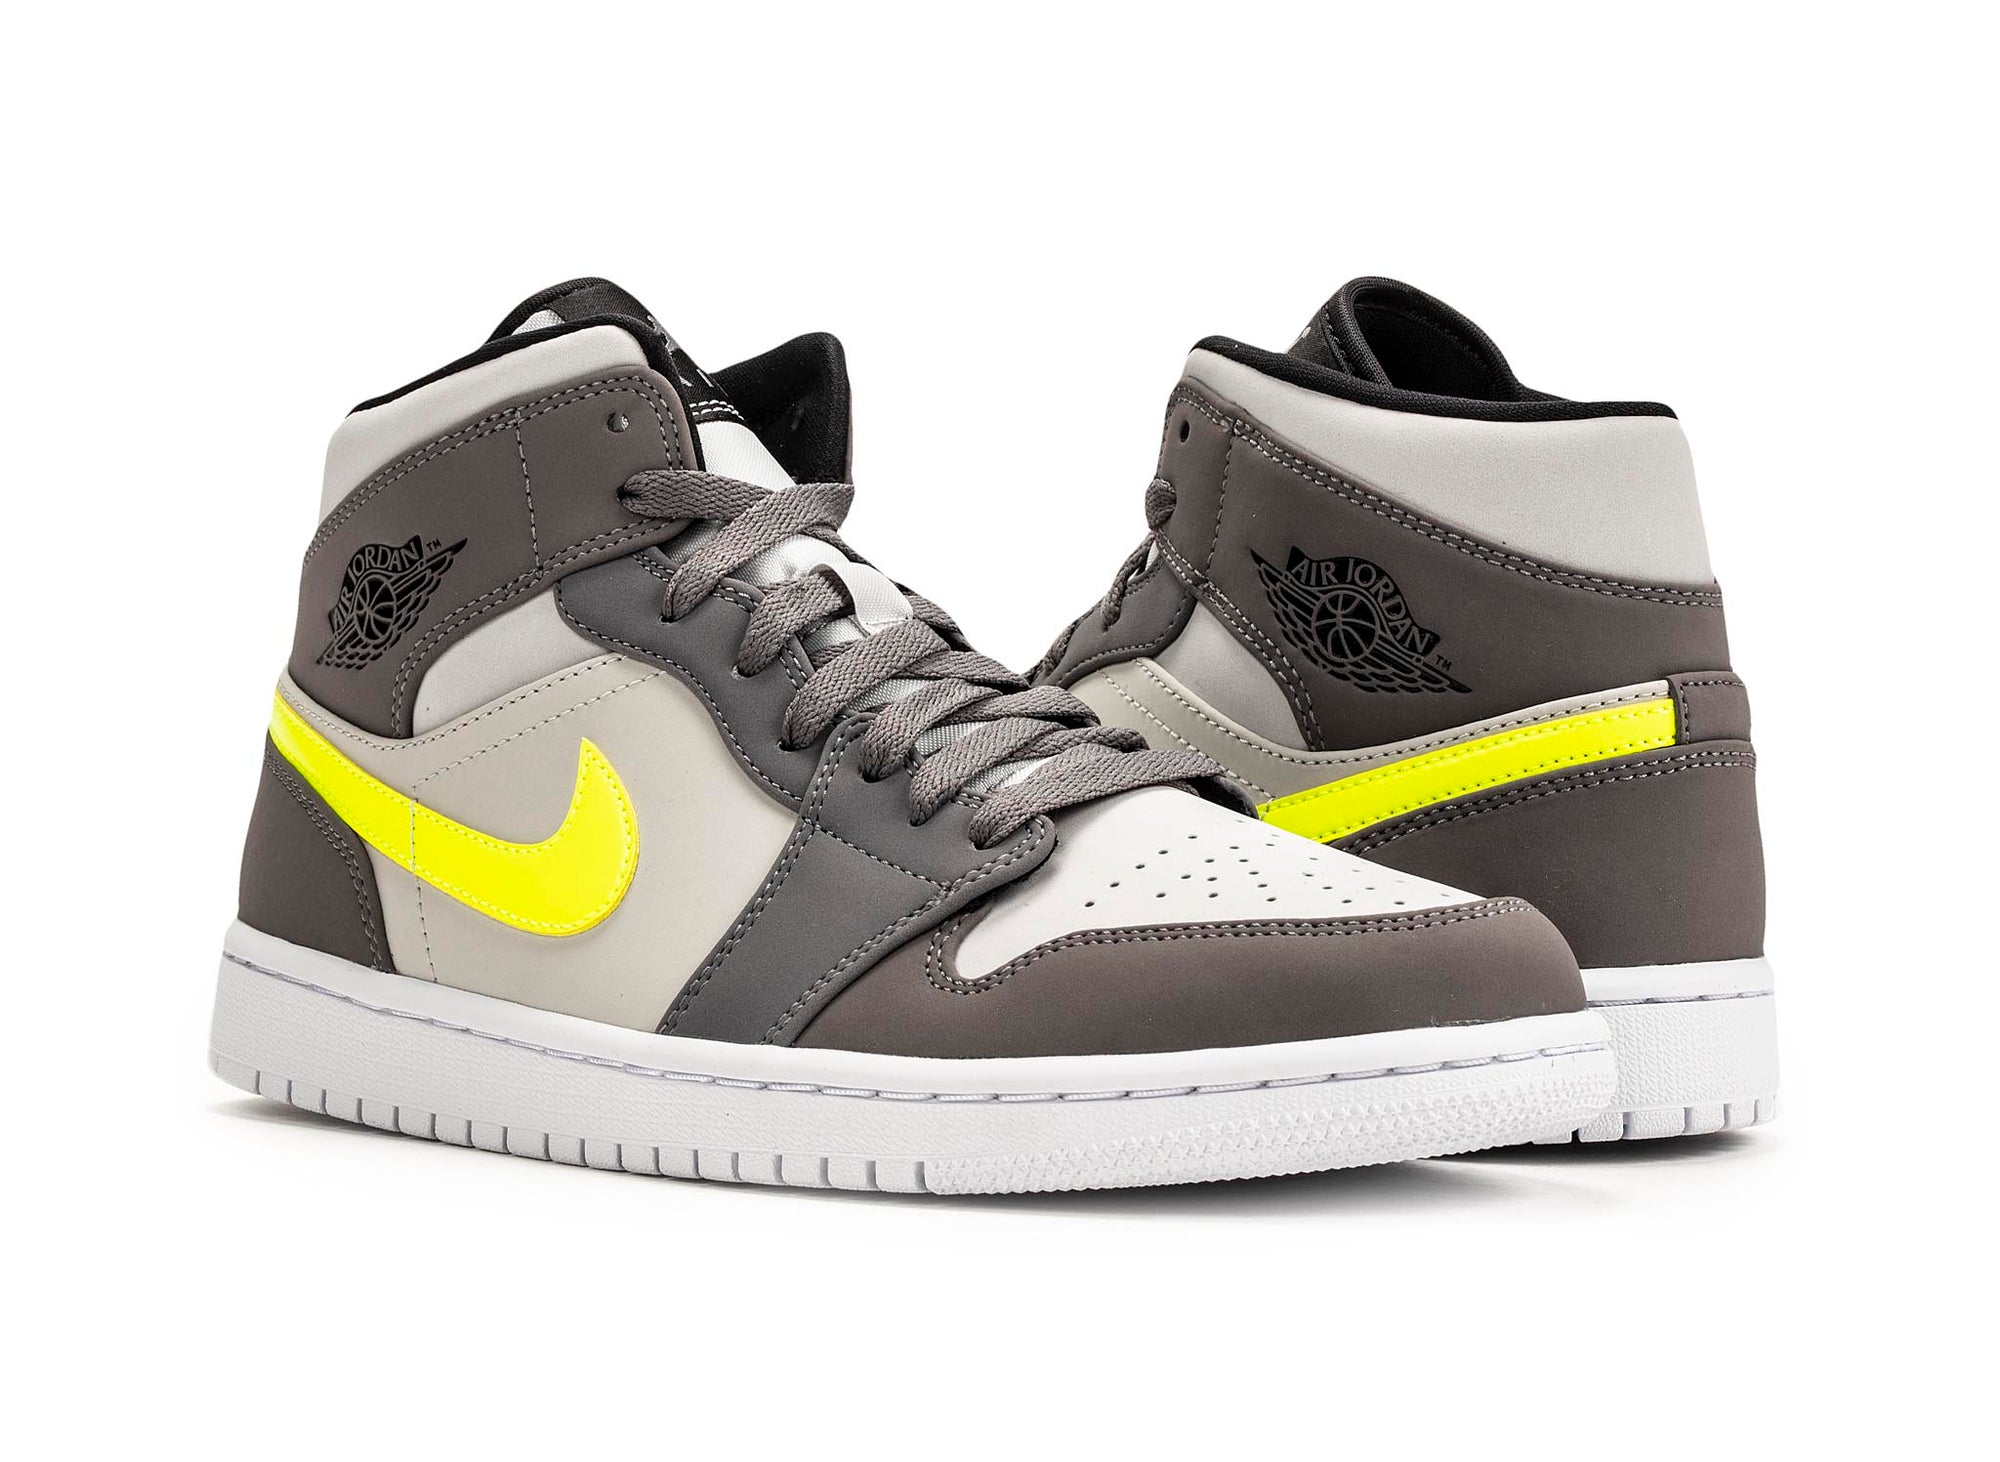 low cost c8bb2 ca105 Air Jordan 1 Mid 'Gunsmoke'